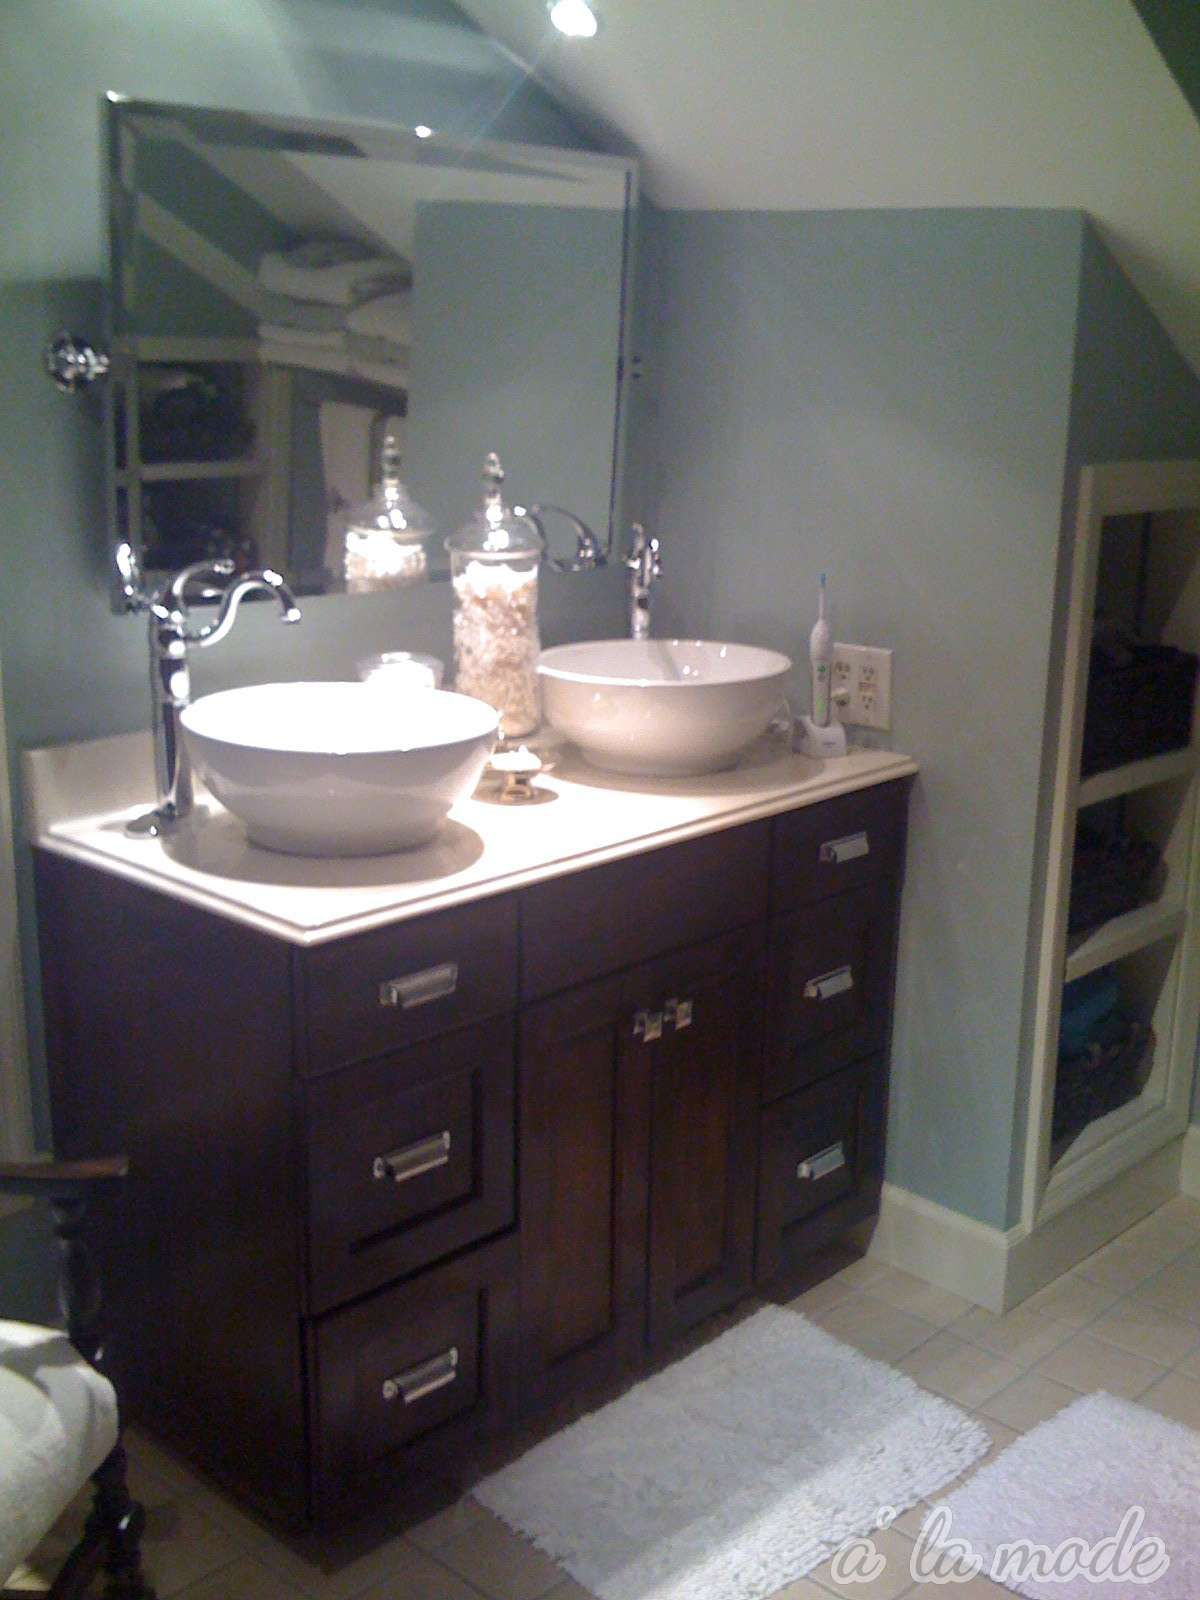 Favored White Like Porcelain Glass Vanity Top With 2 Bowl ...